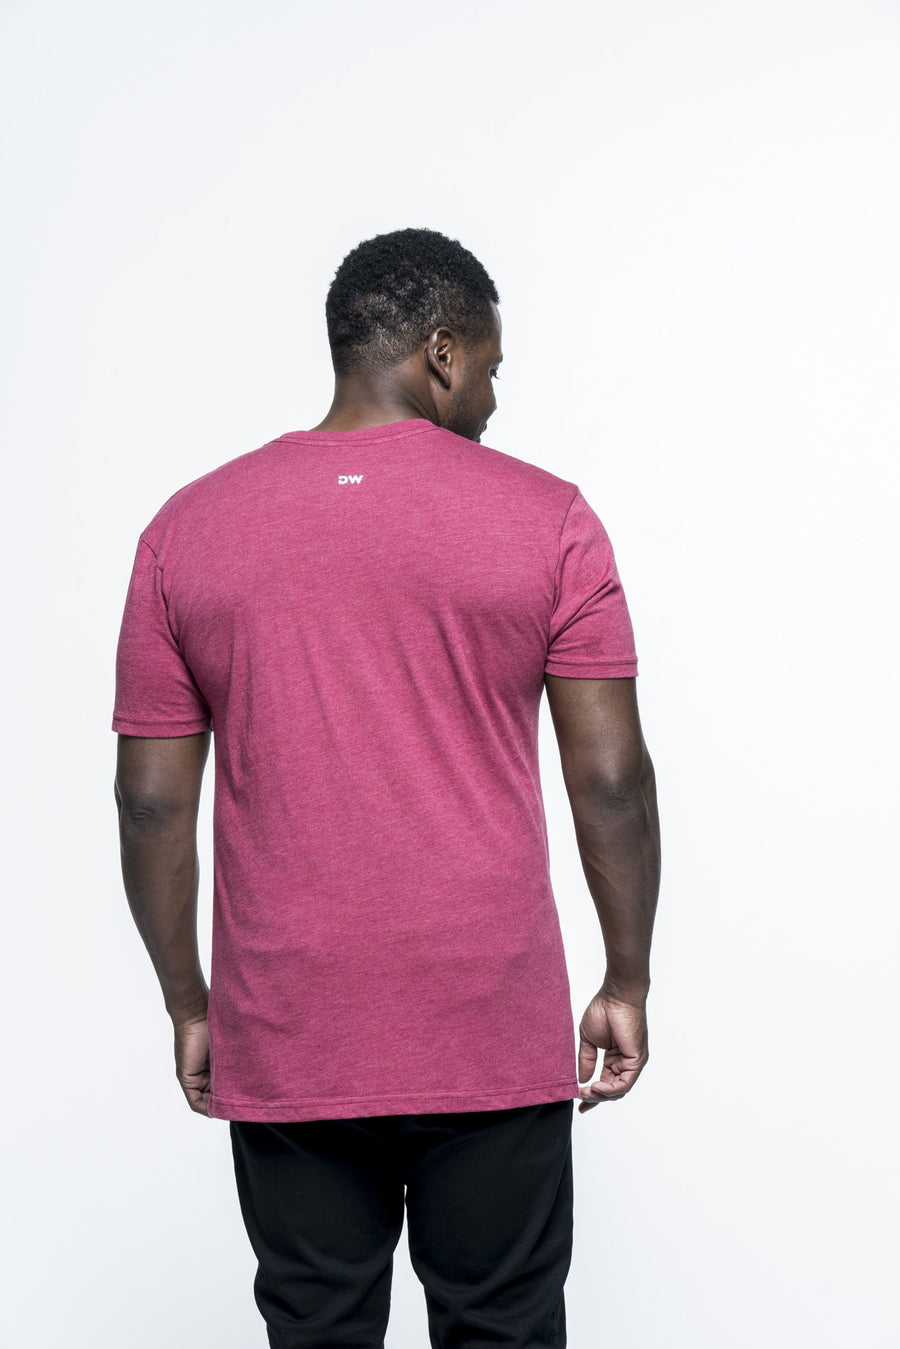 Profit with Purpose Short Sleeve Tee